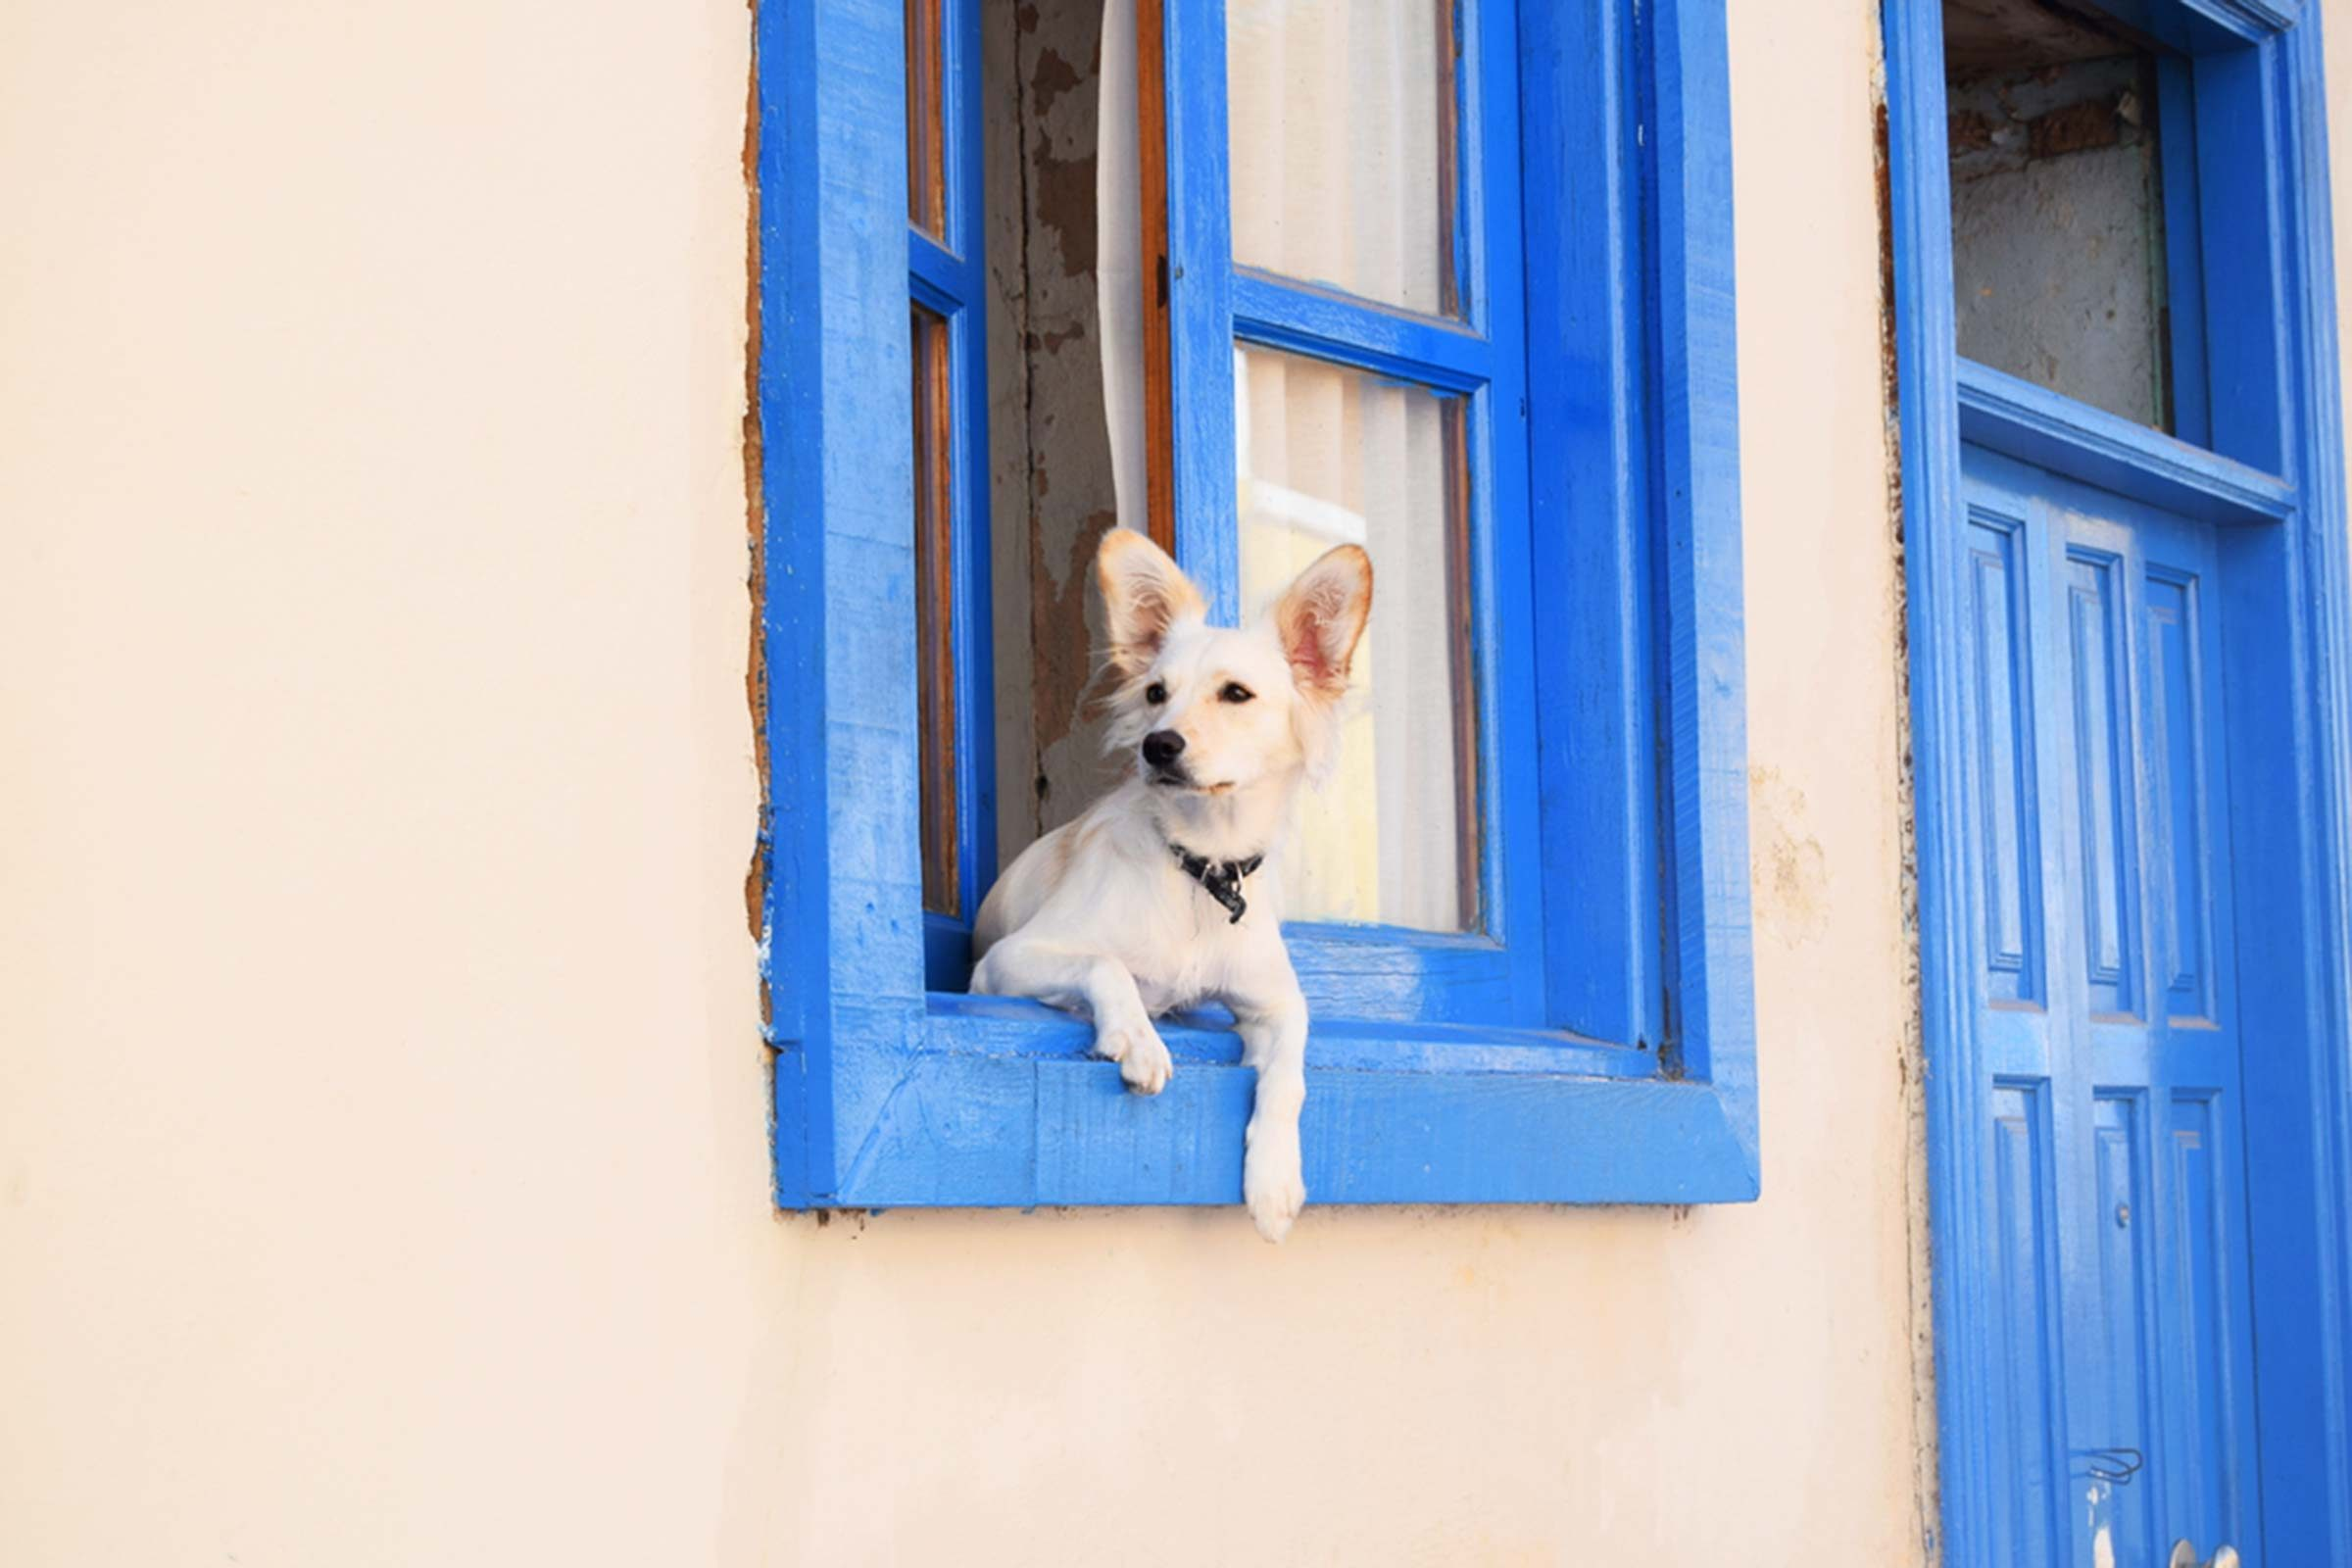 White dog with point ears looking out blue window